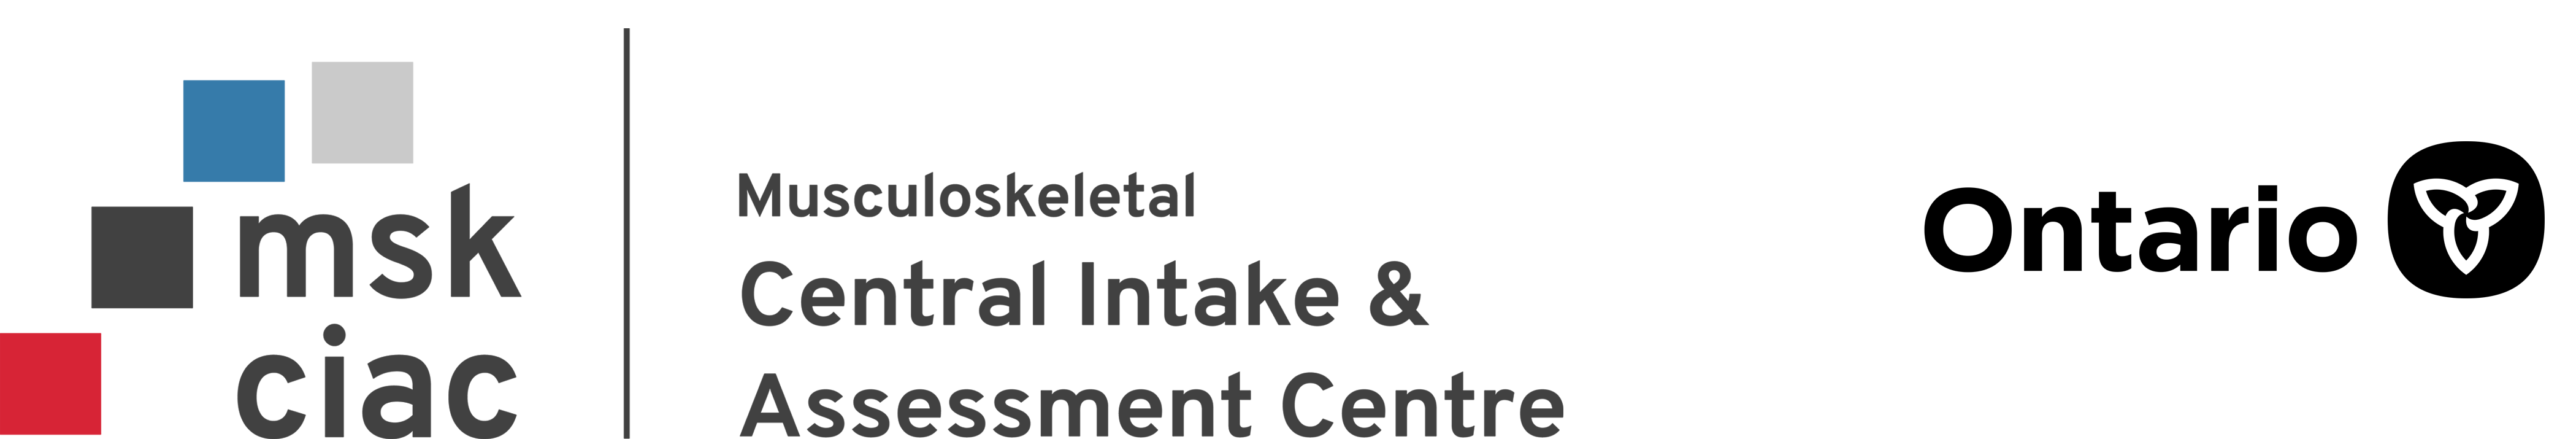 Musculoskeletal Central Intake and Assessment Centre program logo with Ontario logo